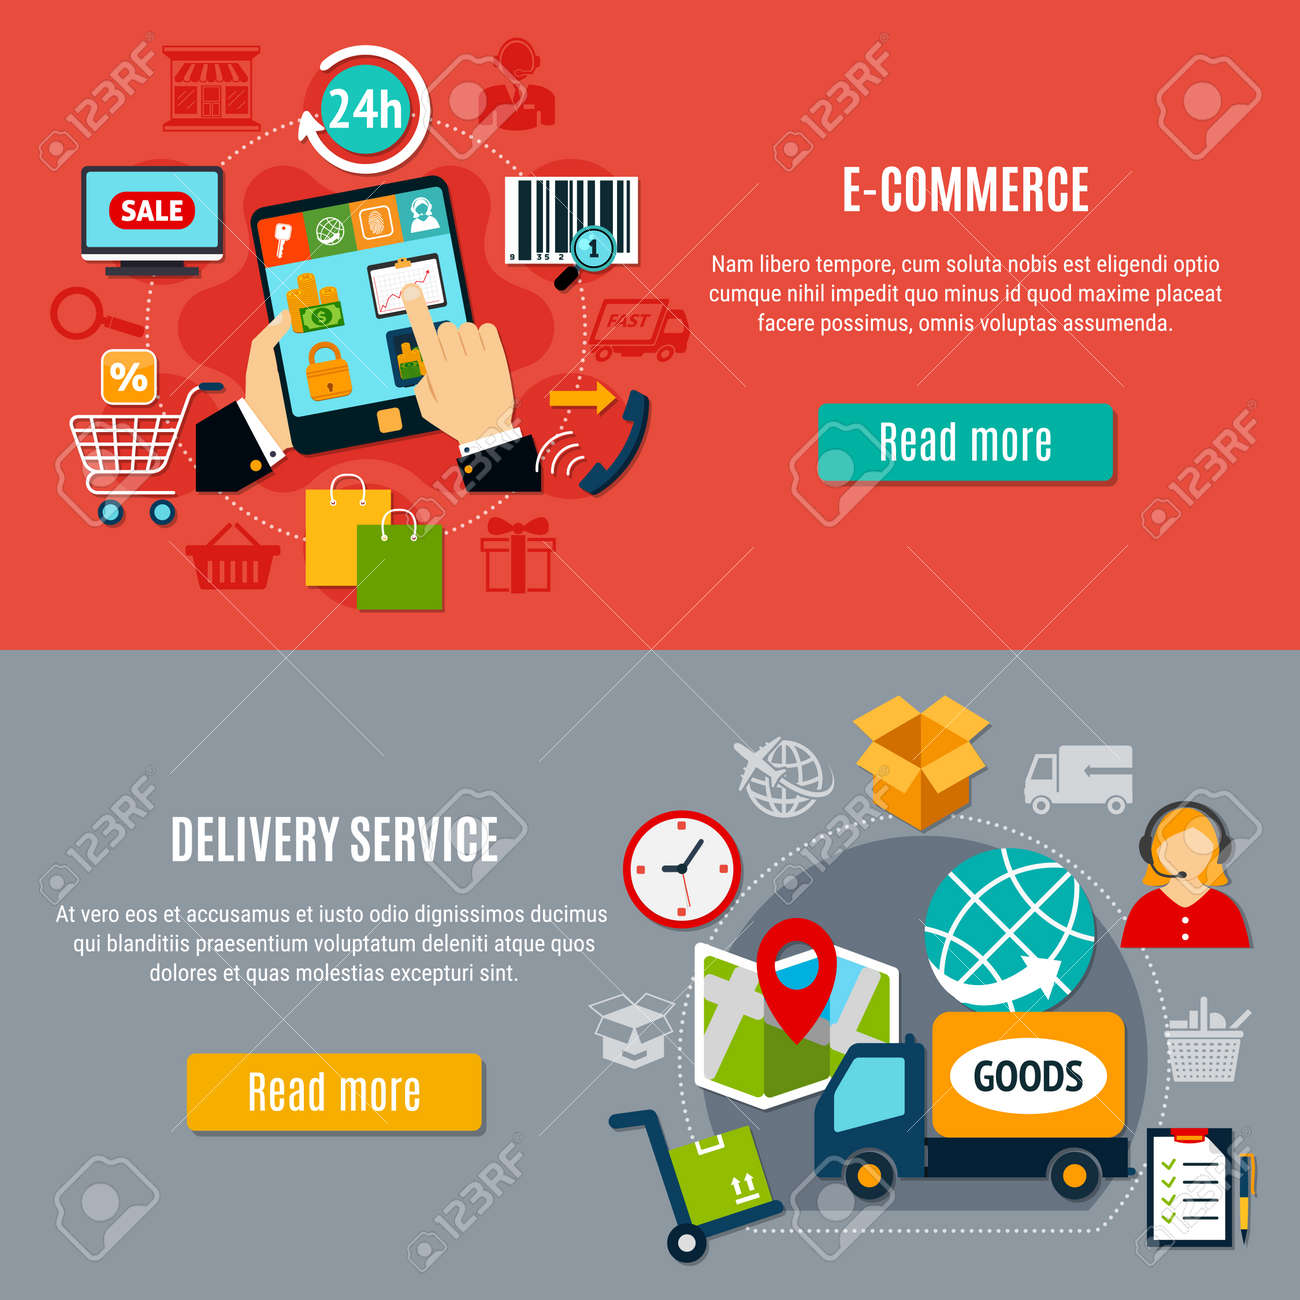 E-commerce horizontal banners with search of goods, purchase on electronic device, delivery service, isolated vector illustration - 166007717